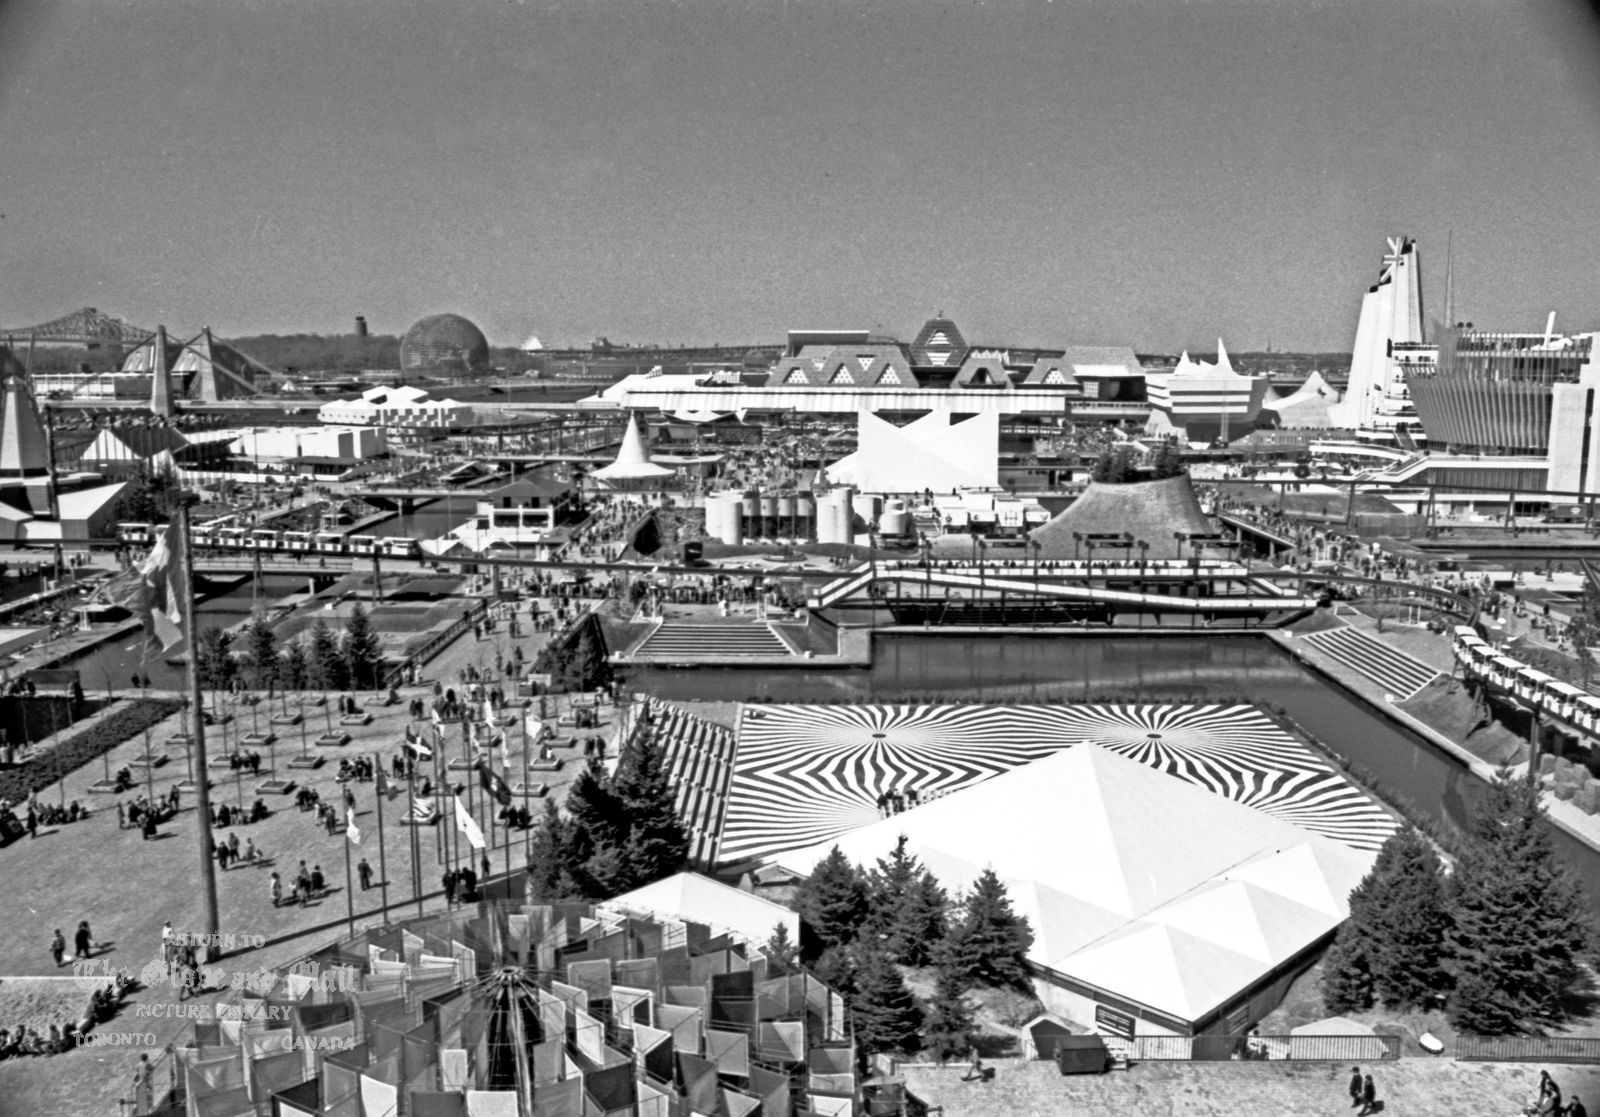 MONTREAL -- EXPO 67 -- View of the fairgrounds prior to official opening, April 24,1967. Credit: John McNeill / The Globe and Mail Negative #67114-20